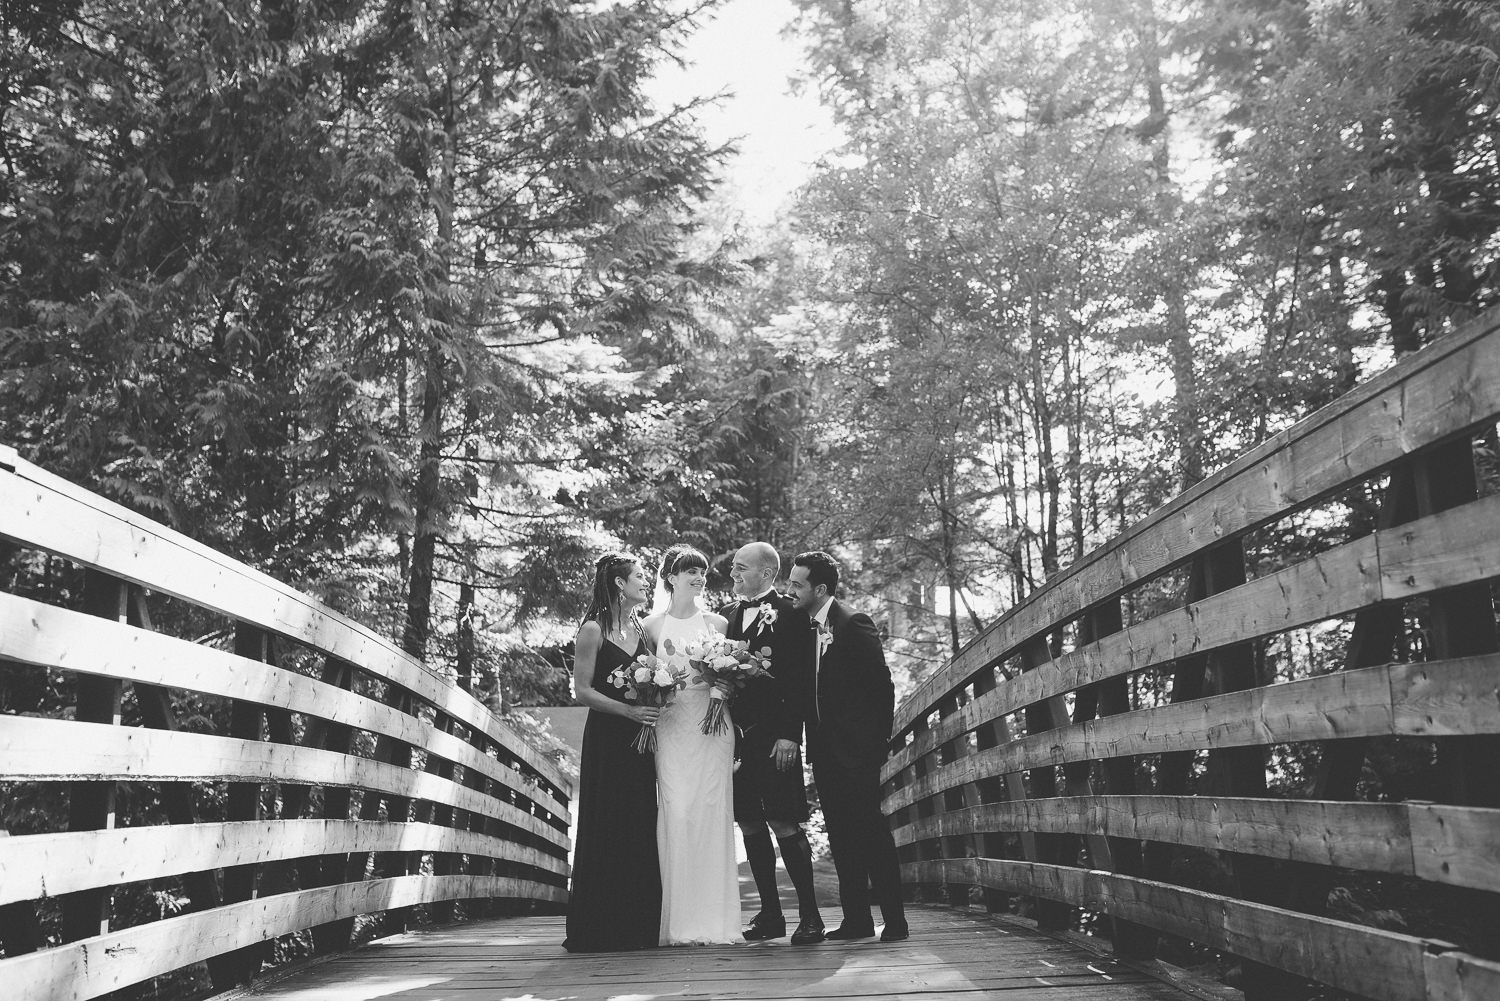 Wedding party on bridge at Furry Creek Gold & Country Club